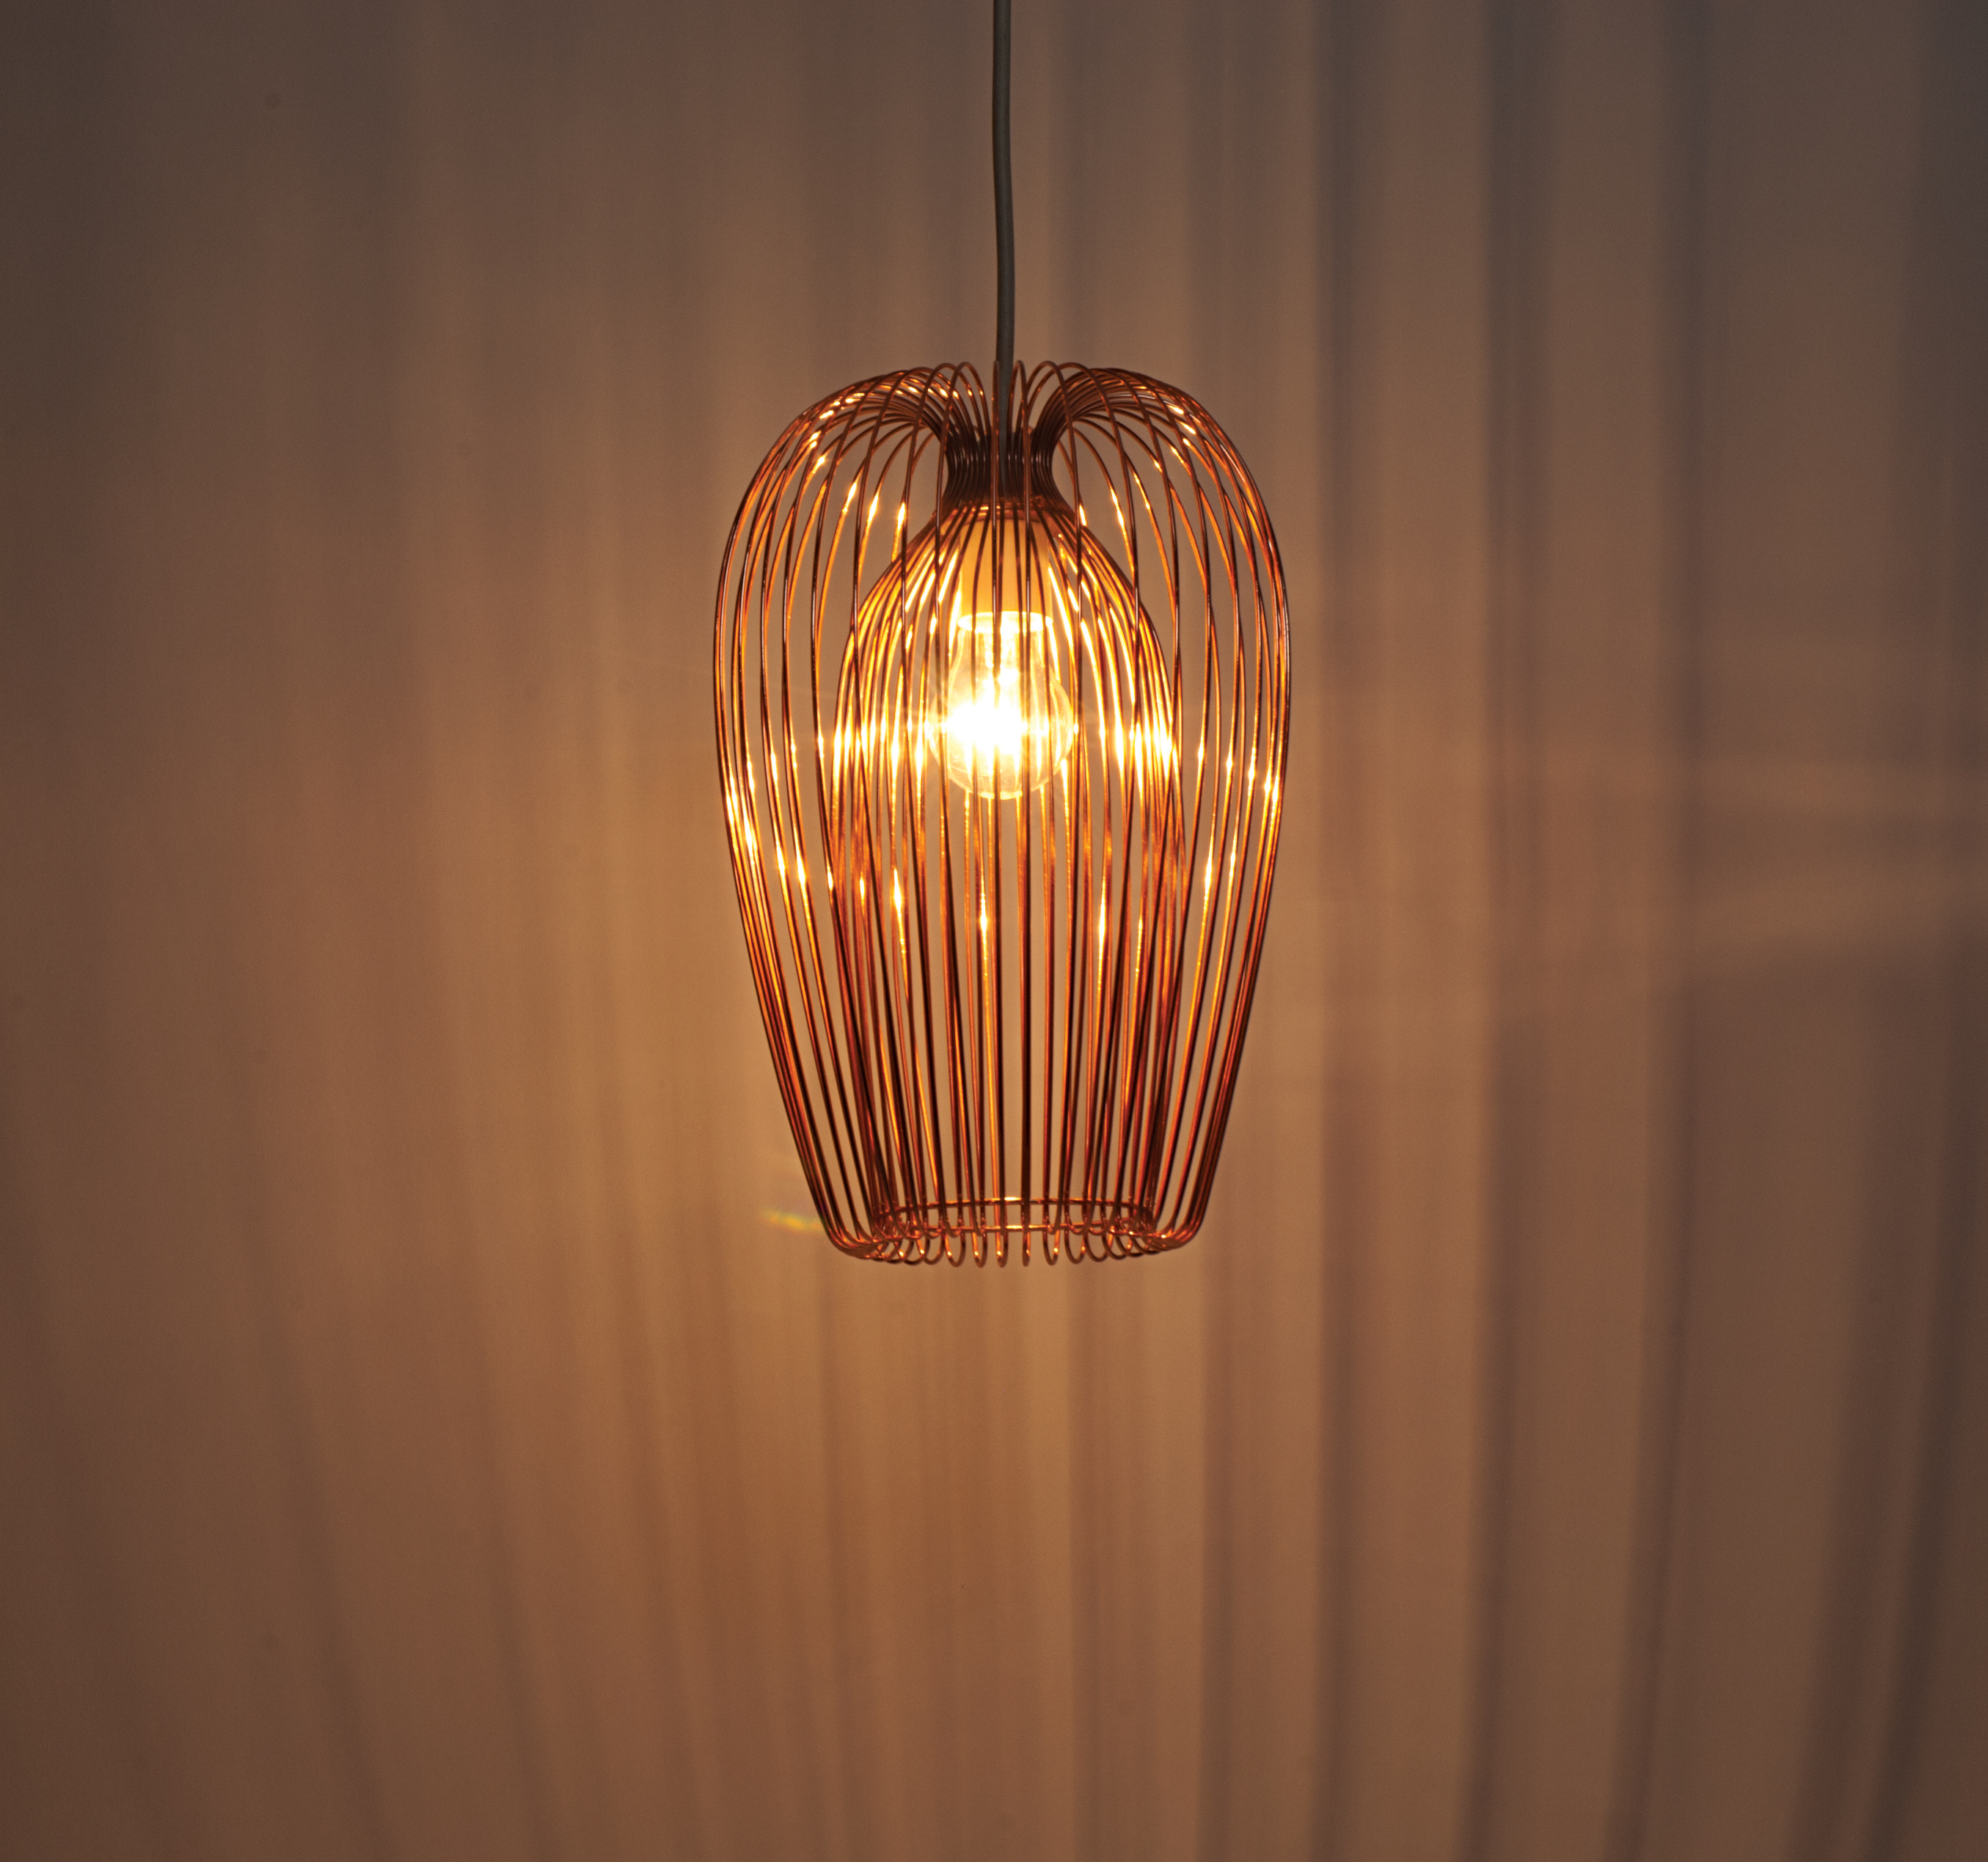 Modern Copper Wire Ceiling Light Shade Non Electric